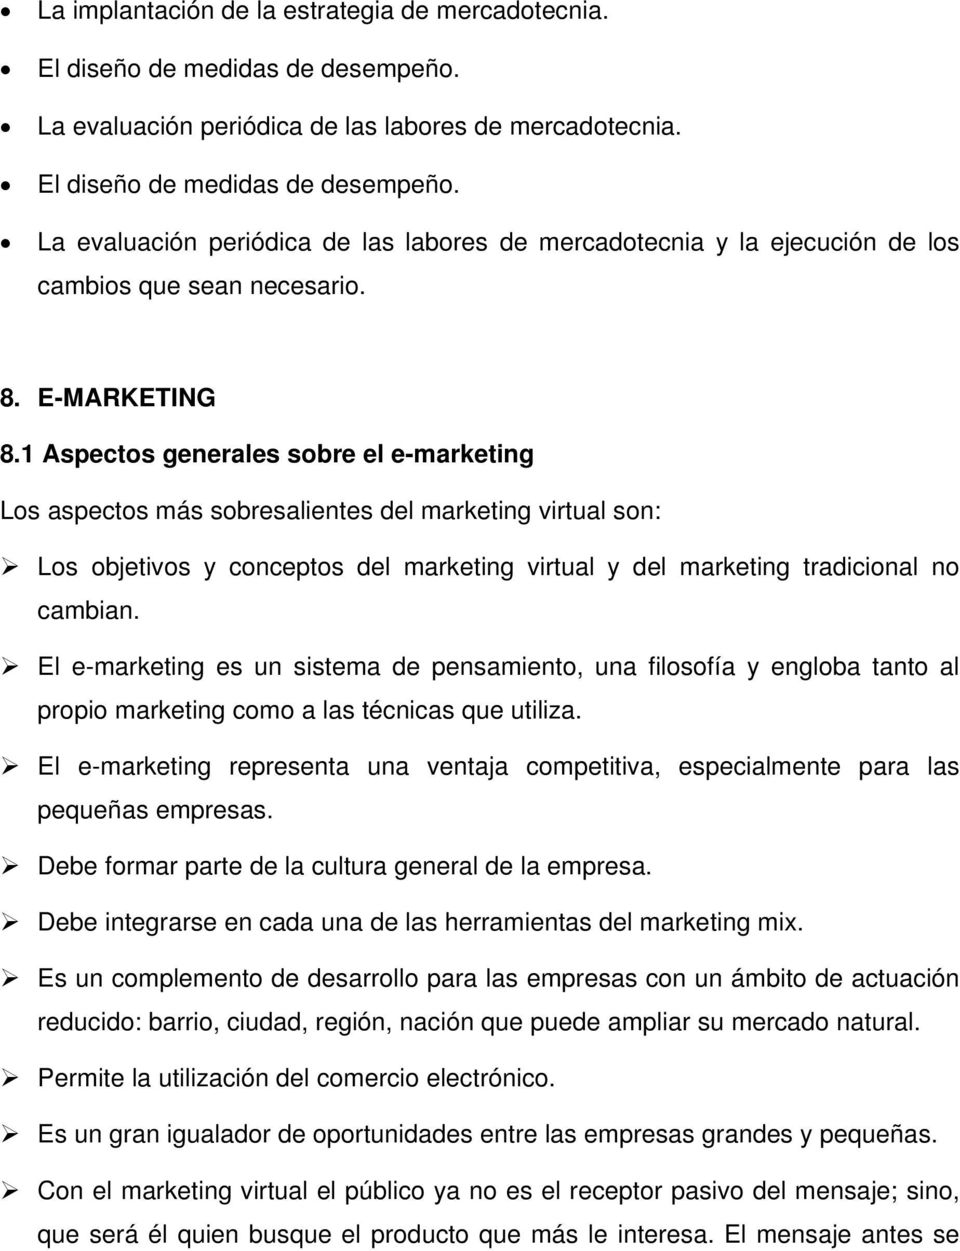 1 Aspectos generales sobre el e-marketing Los aspectos más sobresalientes del marketing virtual son: Los objetivos y conceptos del marketing virtual y del marketing tradicional no cambian.